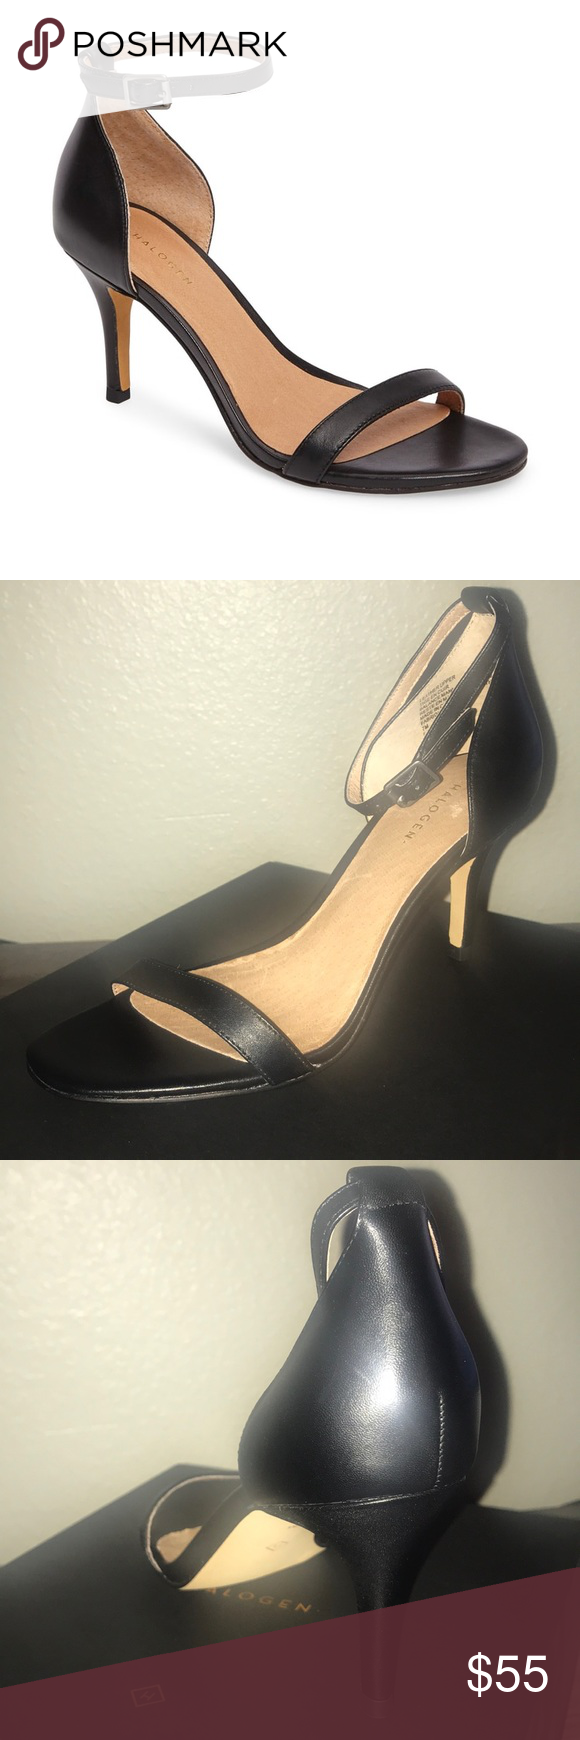 0afe3a0a534 Halogen - Audrey Ankle Strap. Never worn. They re beautiful just